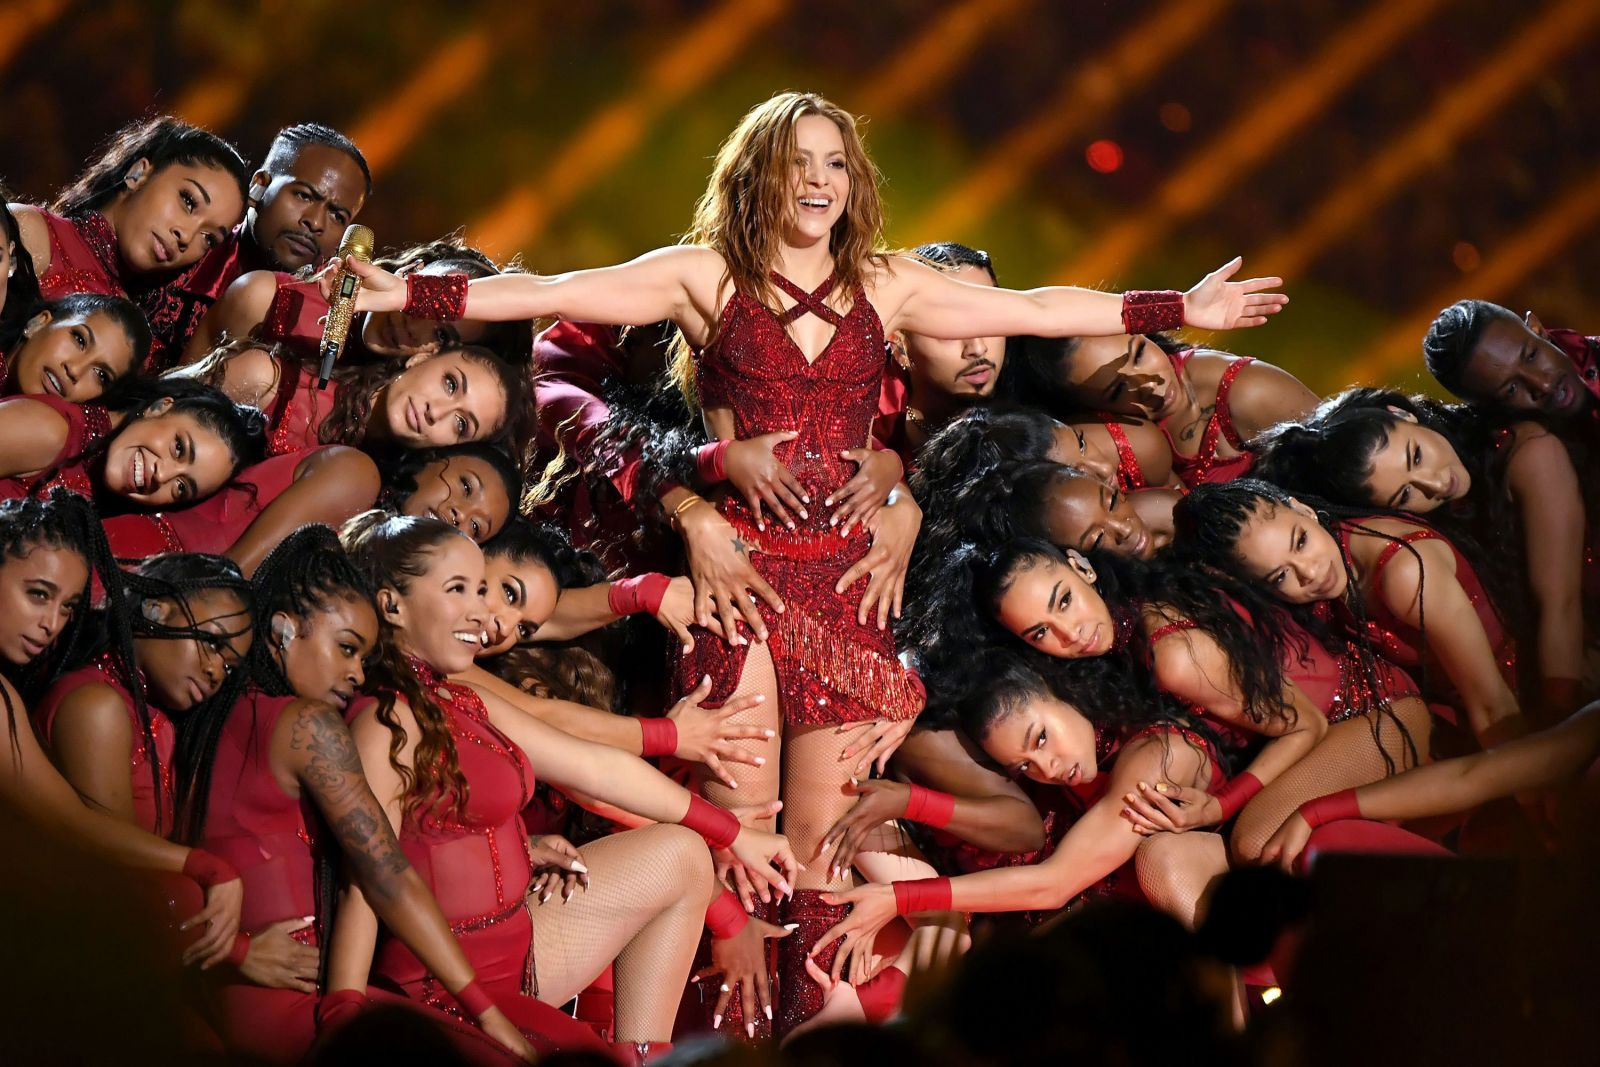 Super Bowl halftime: Craving in the closet